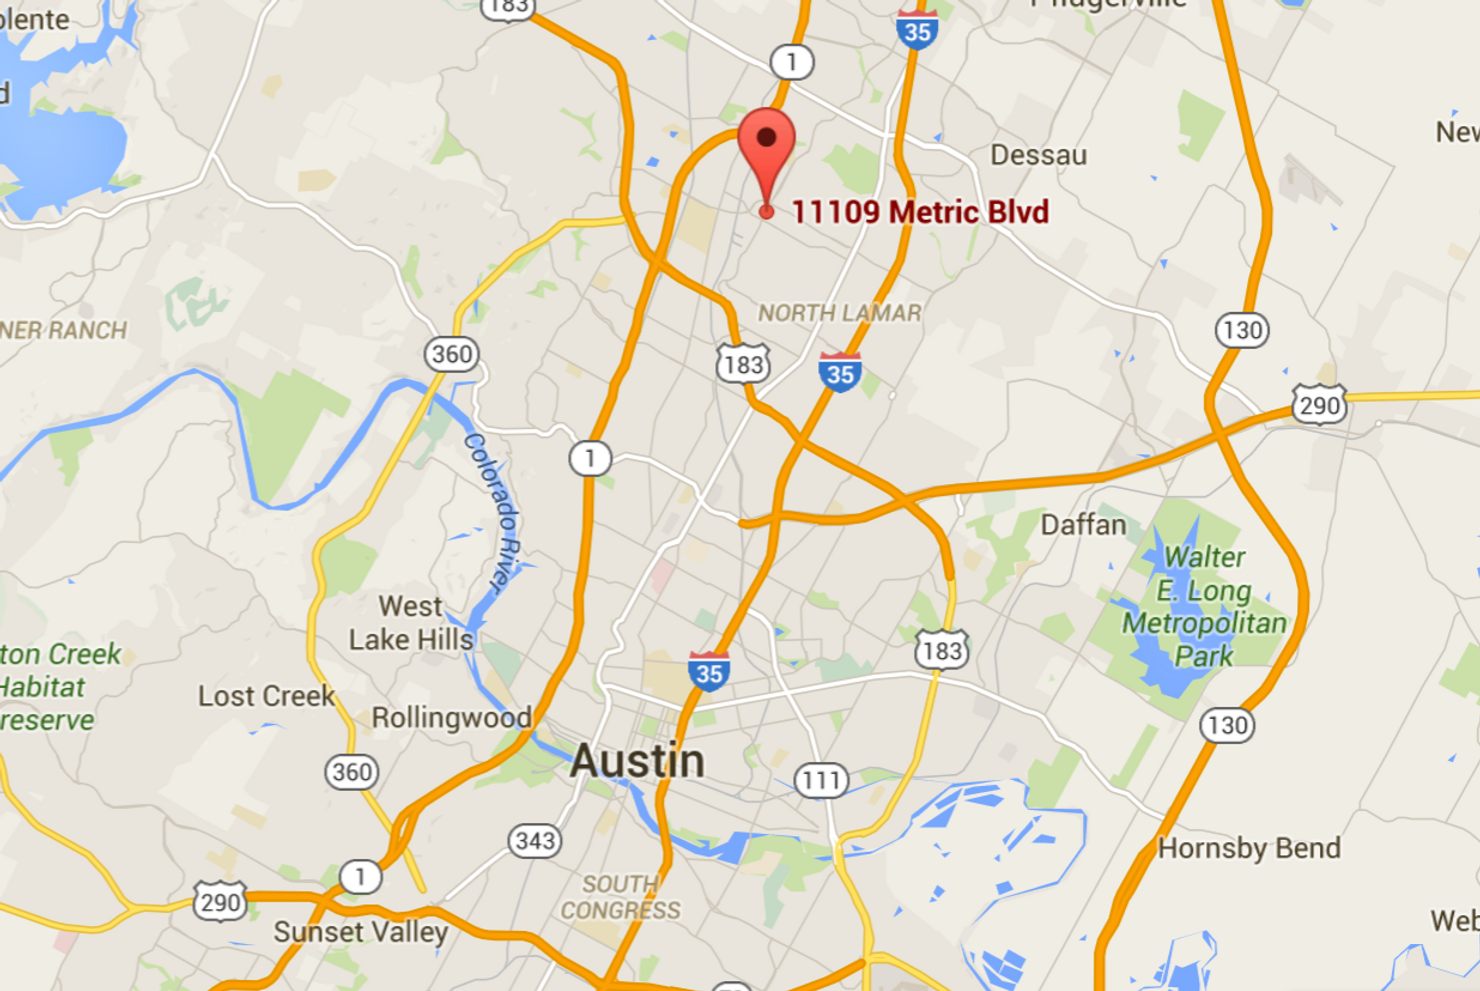 Image 4 for Creative Expansion; Austin-style